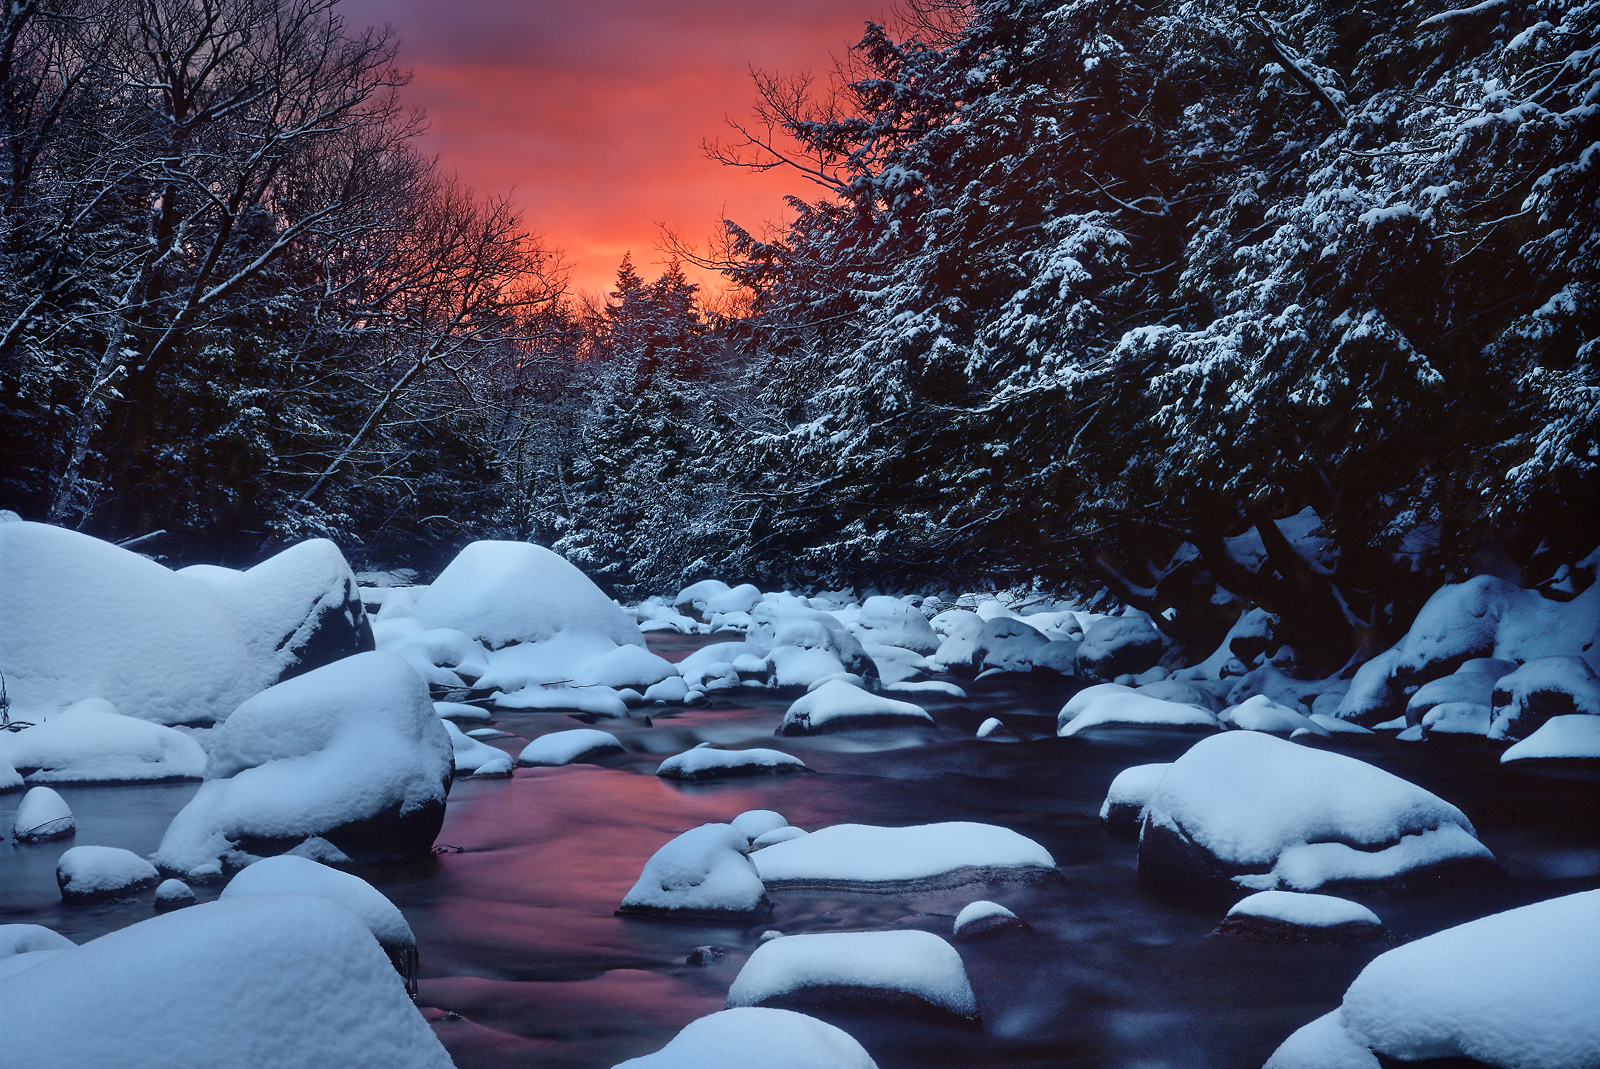 New England Winter Scenes Wallpaper